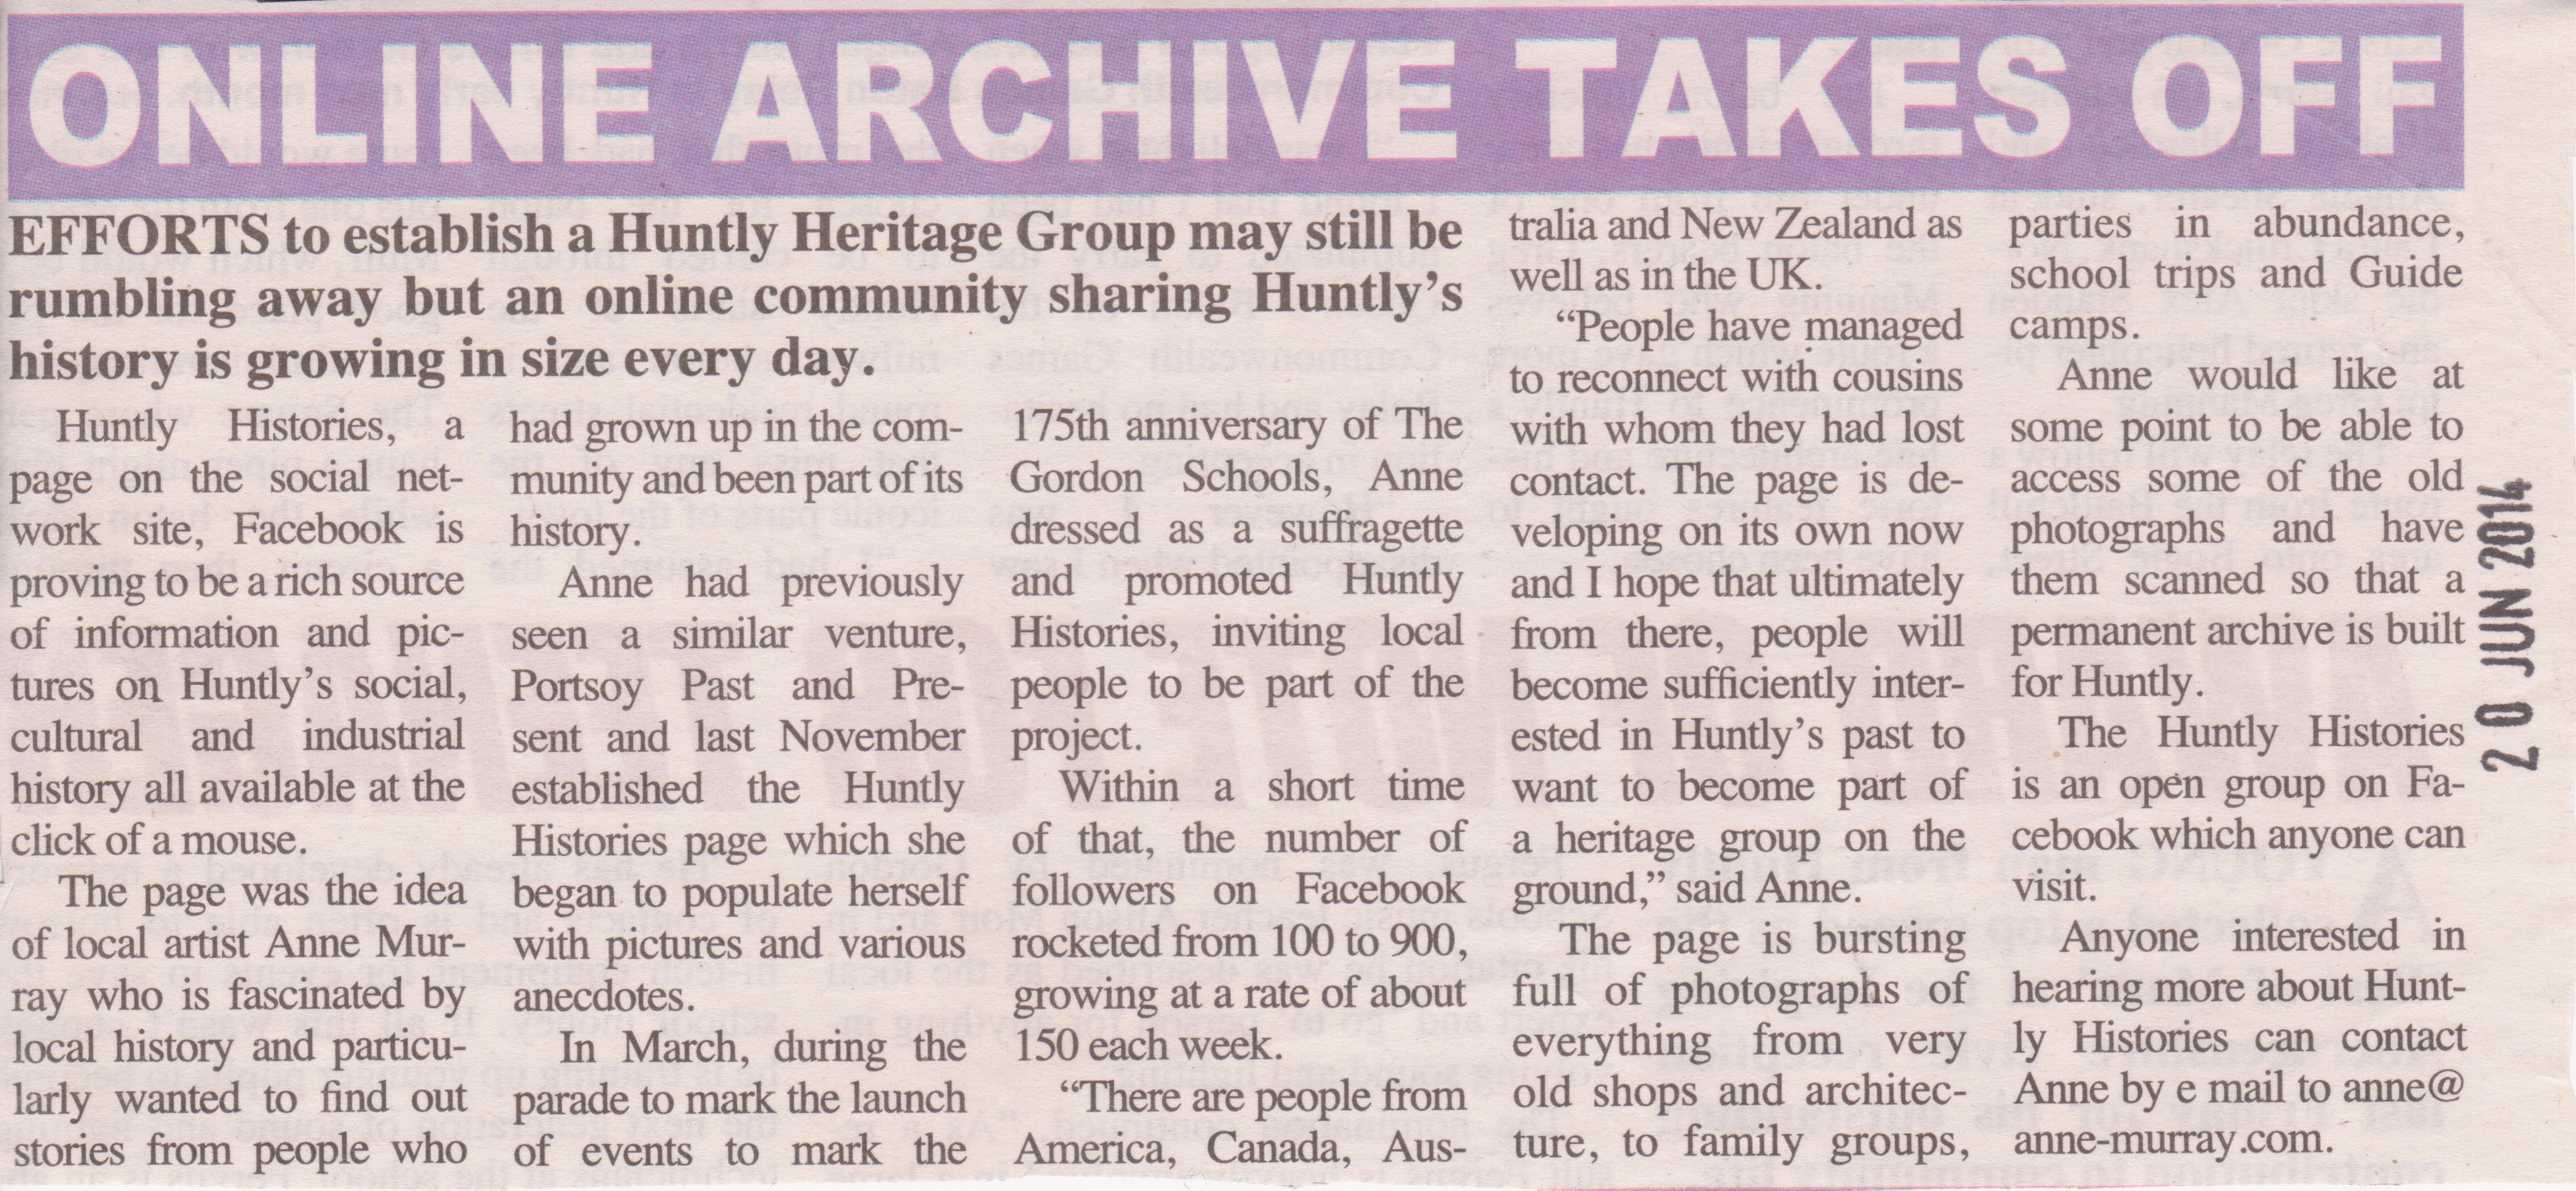 Huntly Histories